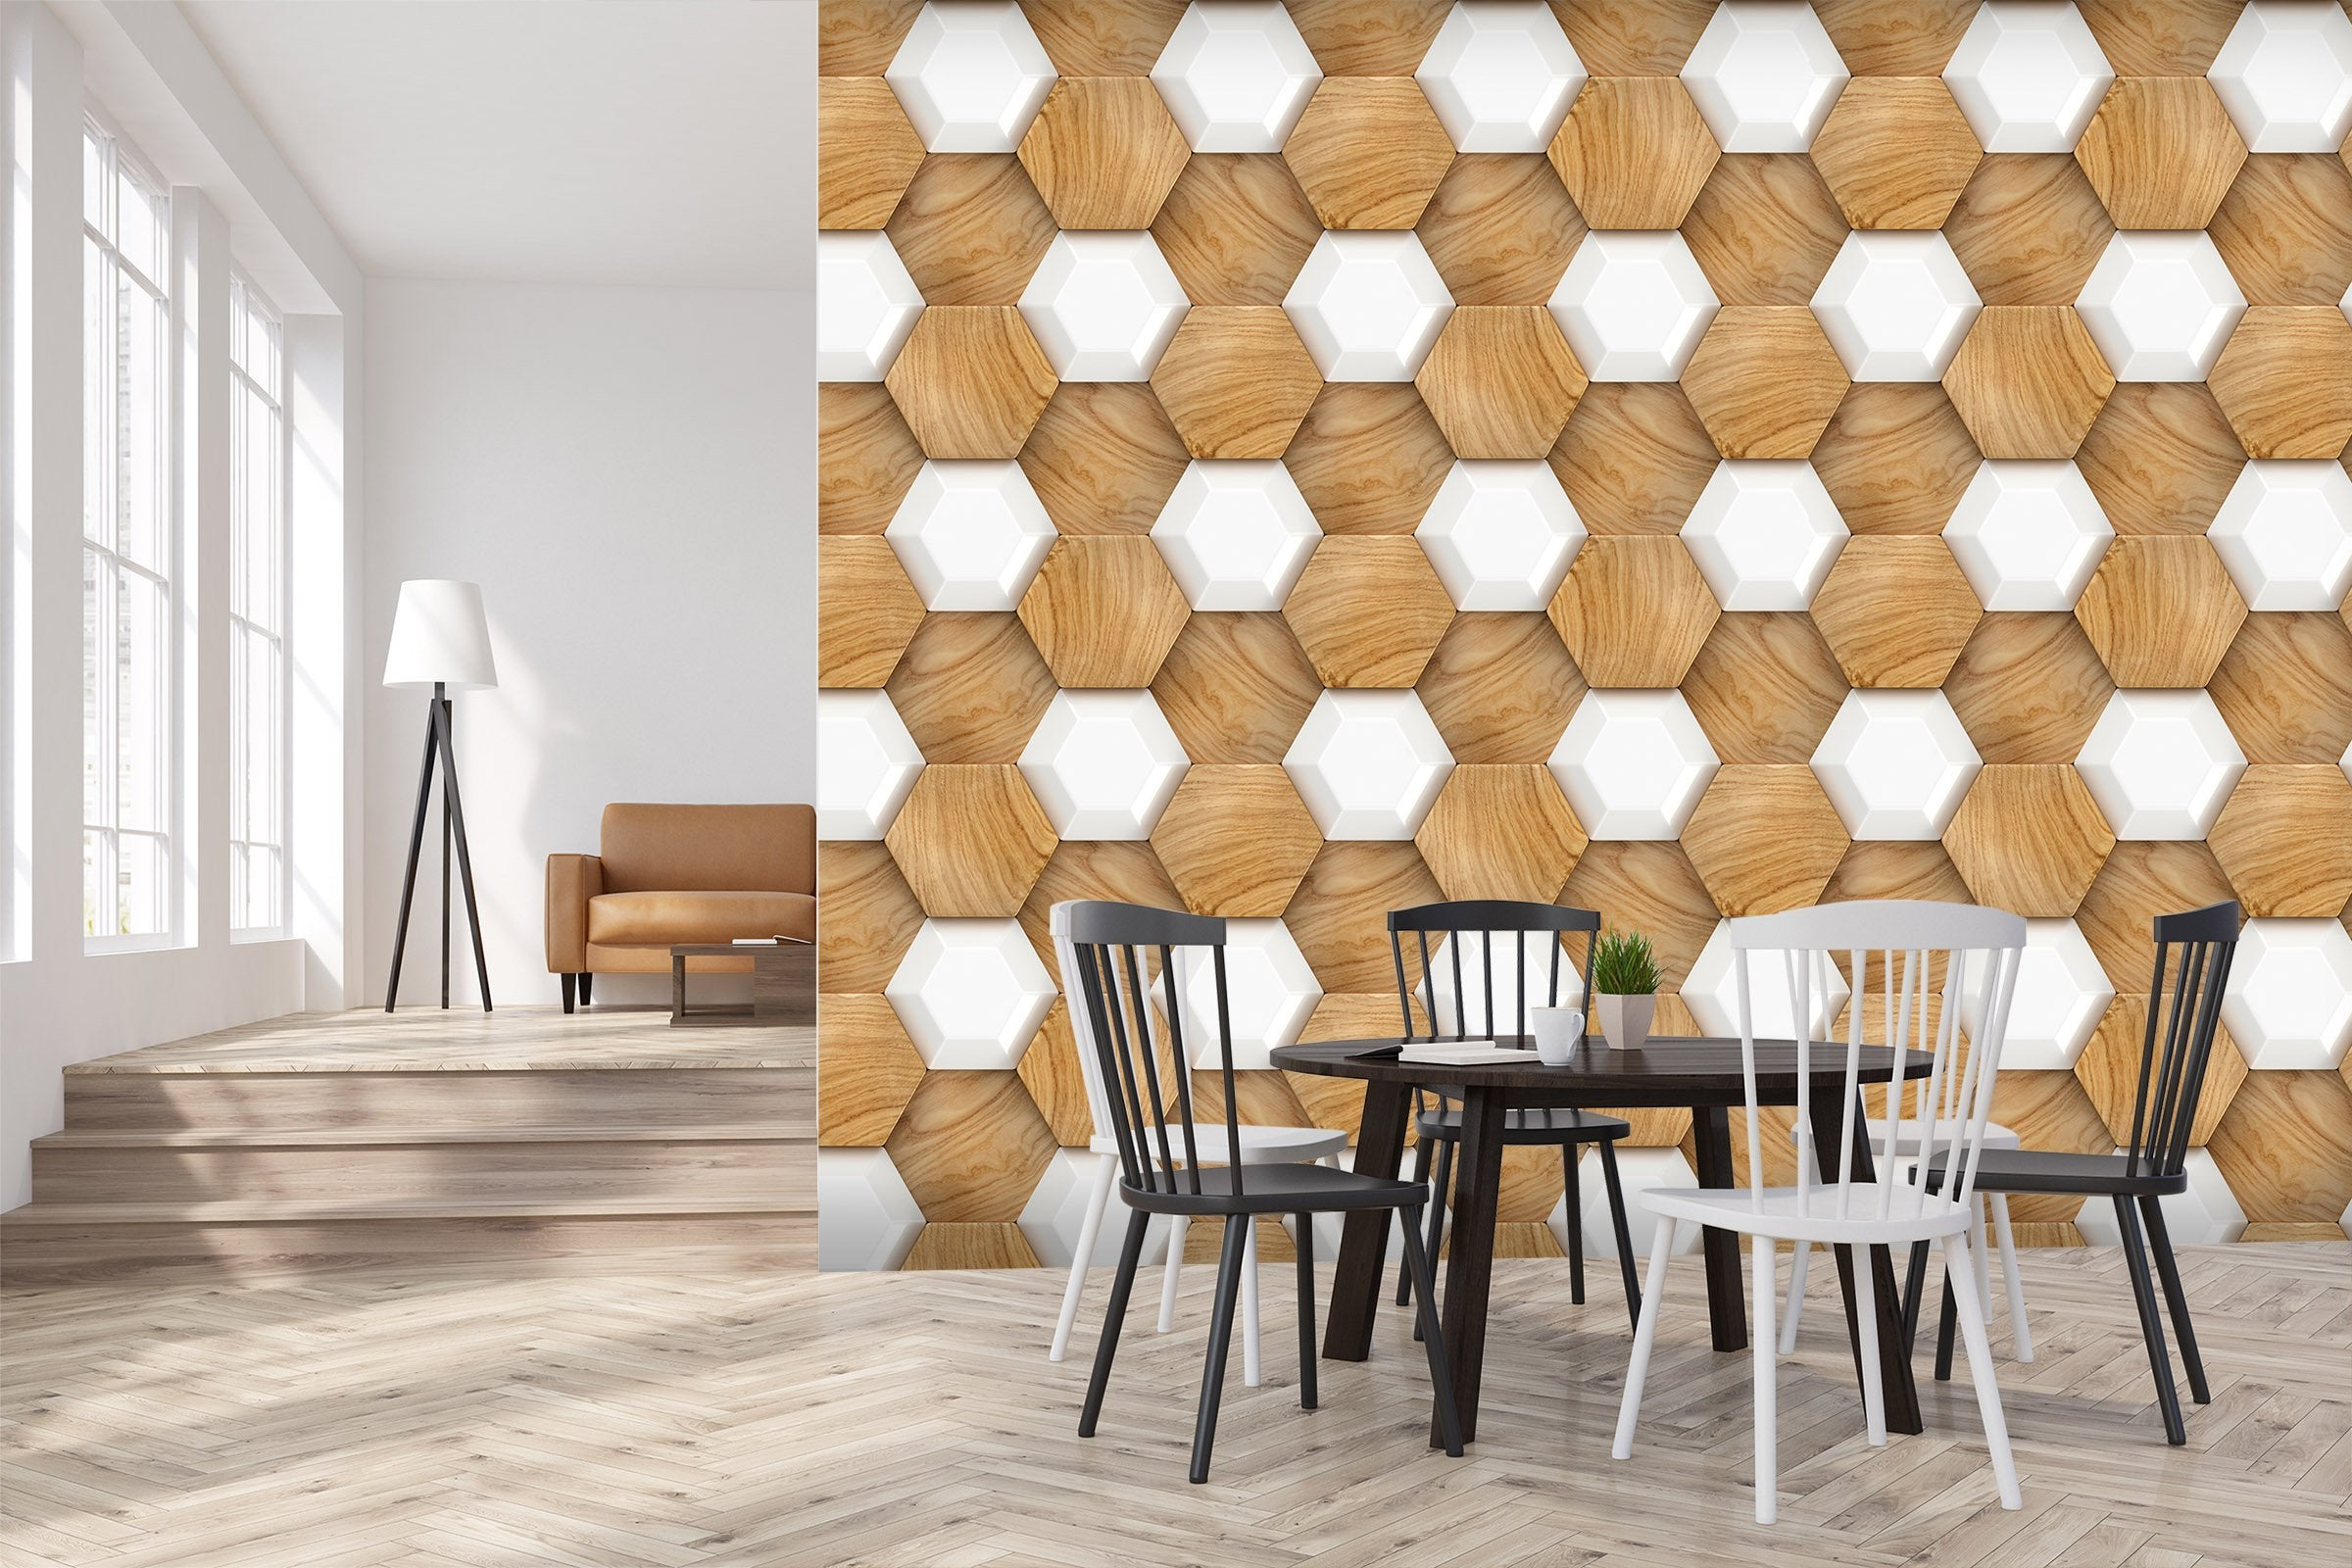 3D Hexagon Wood Grain 60 Wallpaper AJ Wallpaper